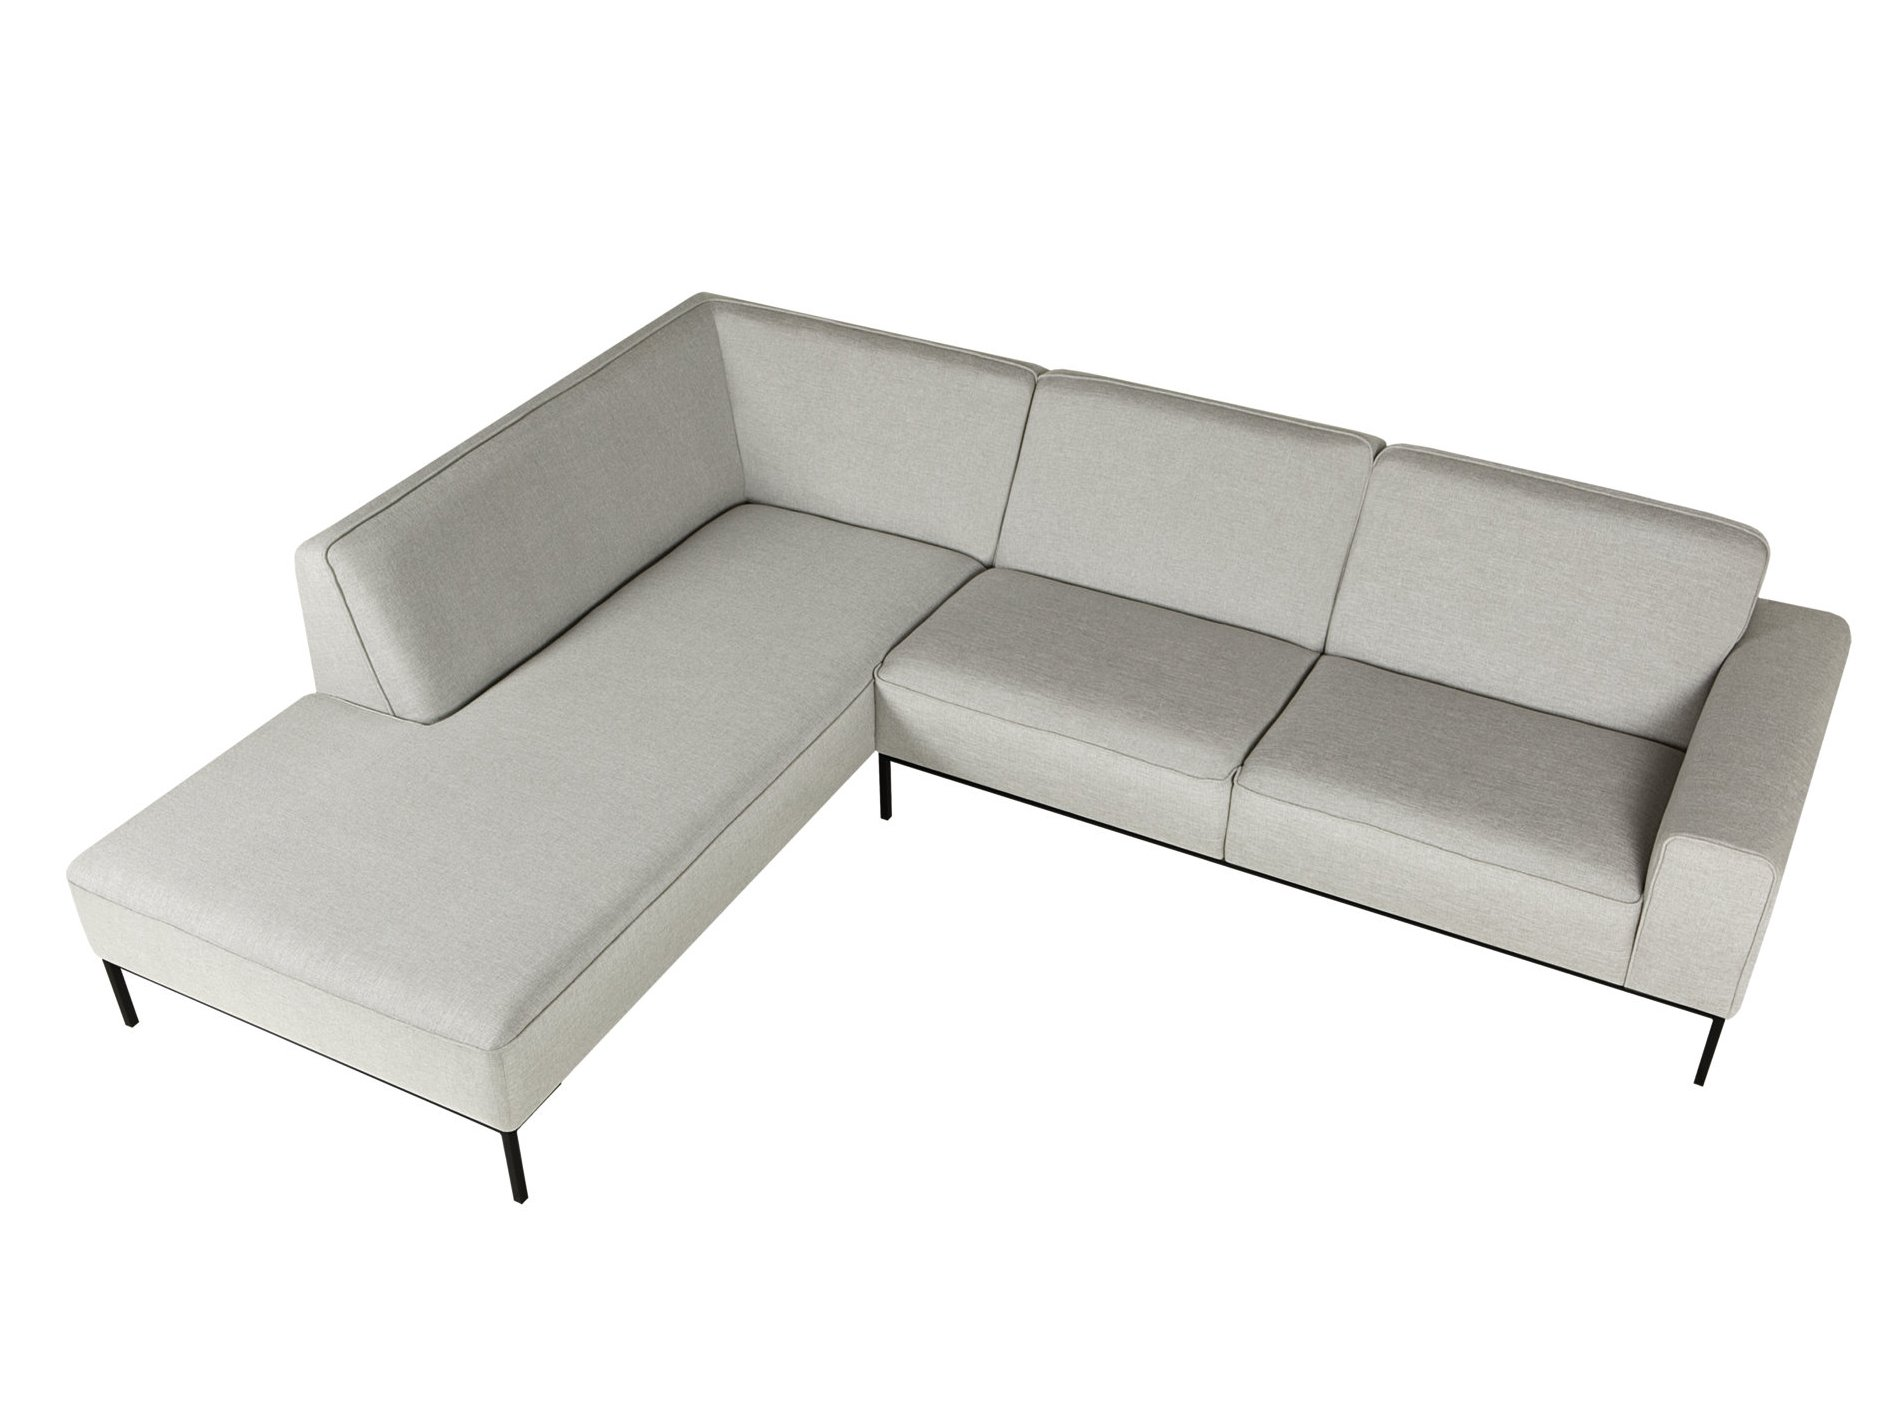 Ville sofa with chaise longue ville collection by sits for Chaise longue sofas